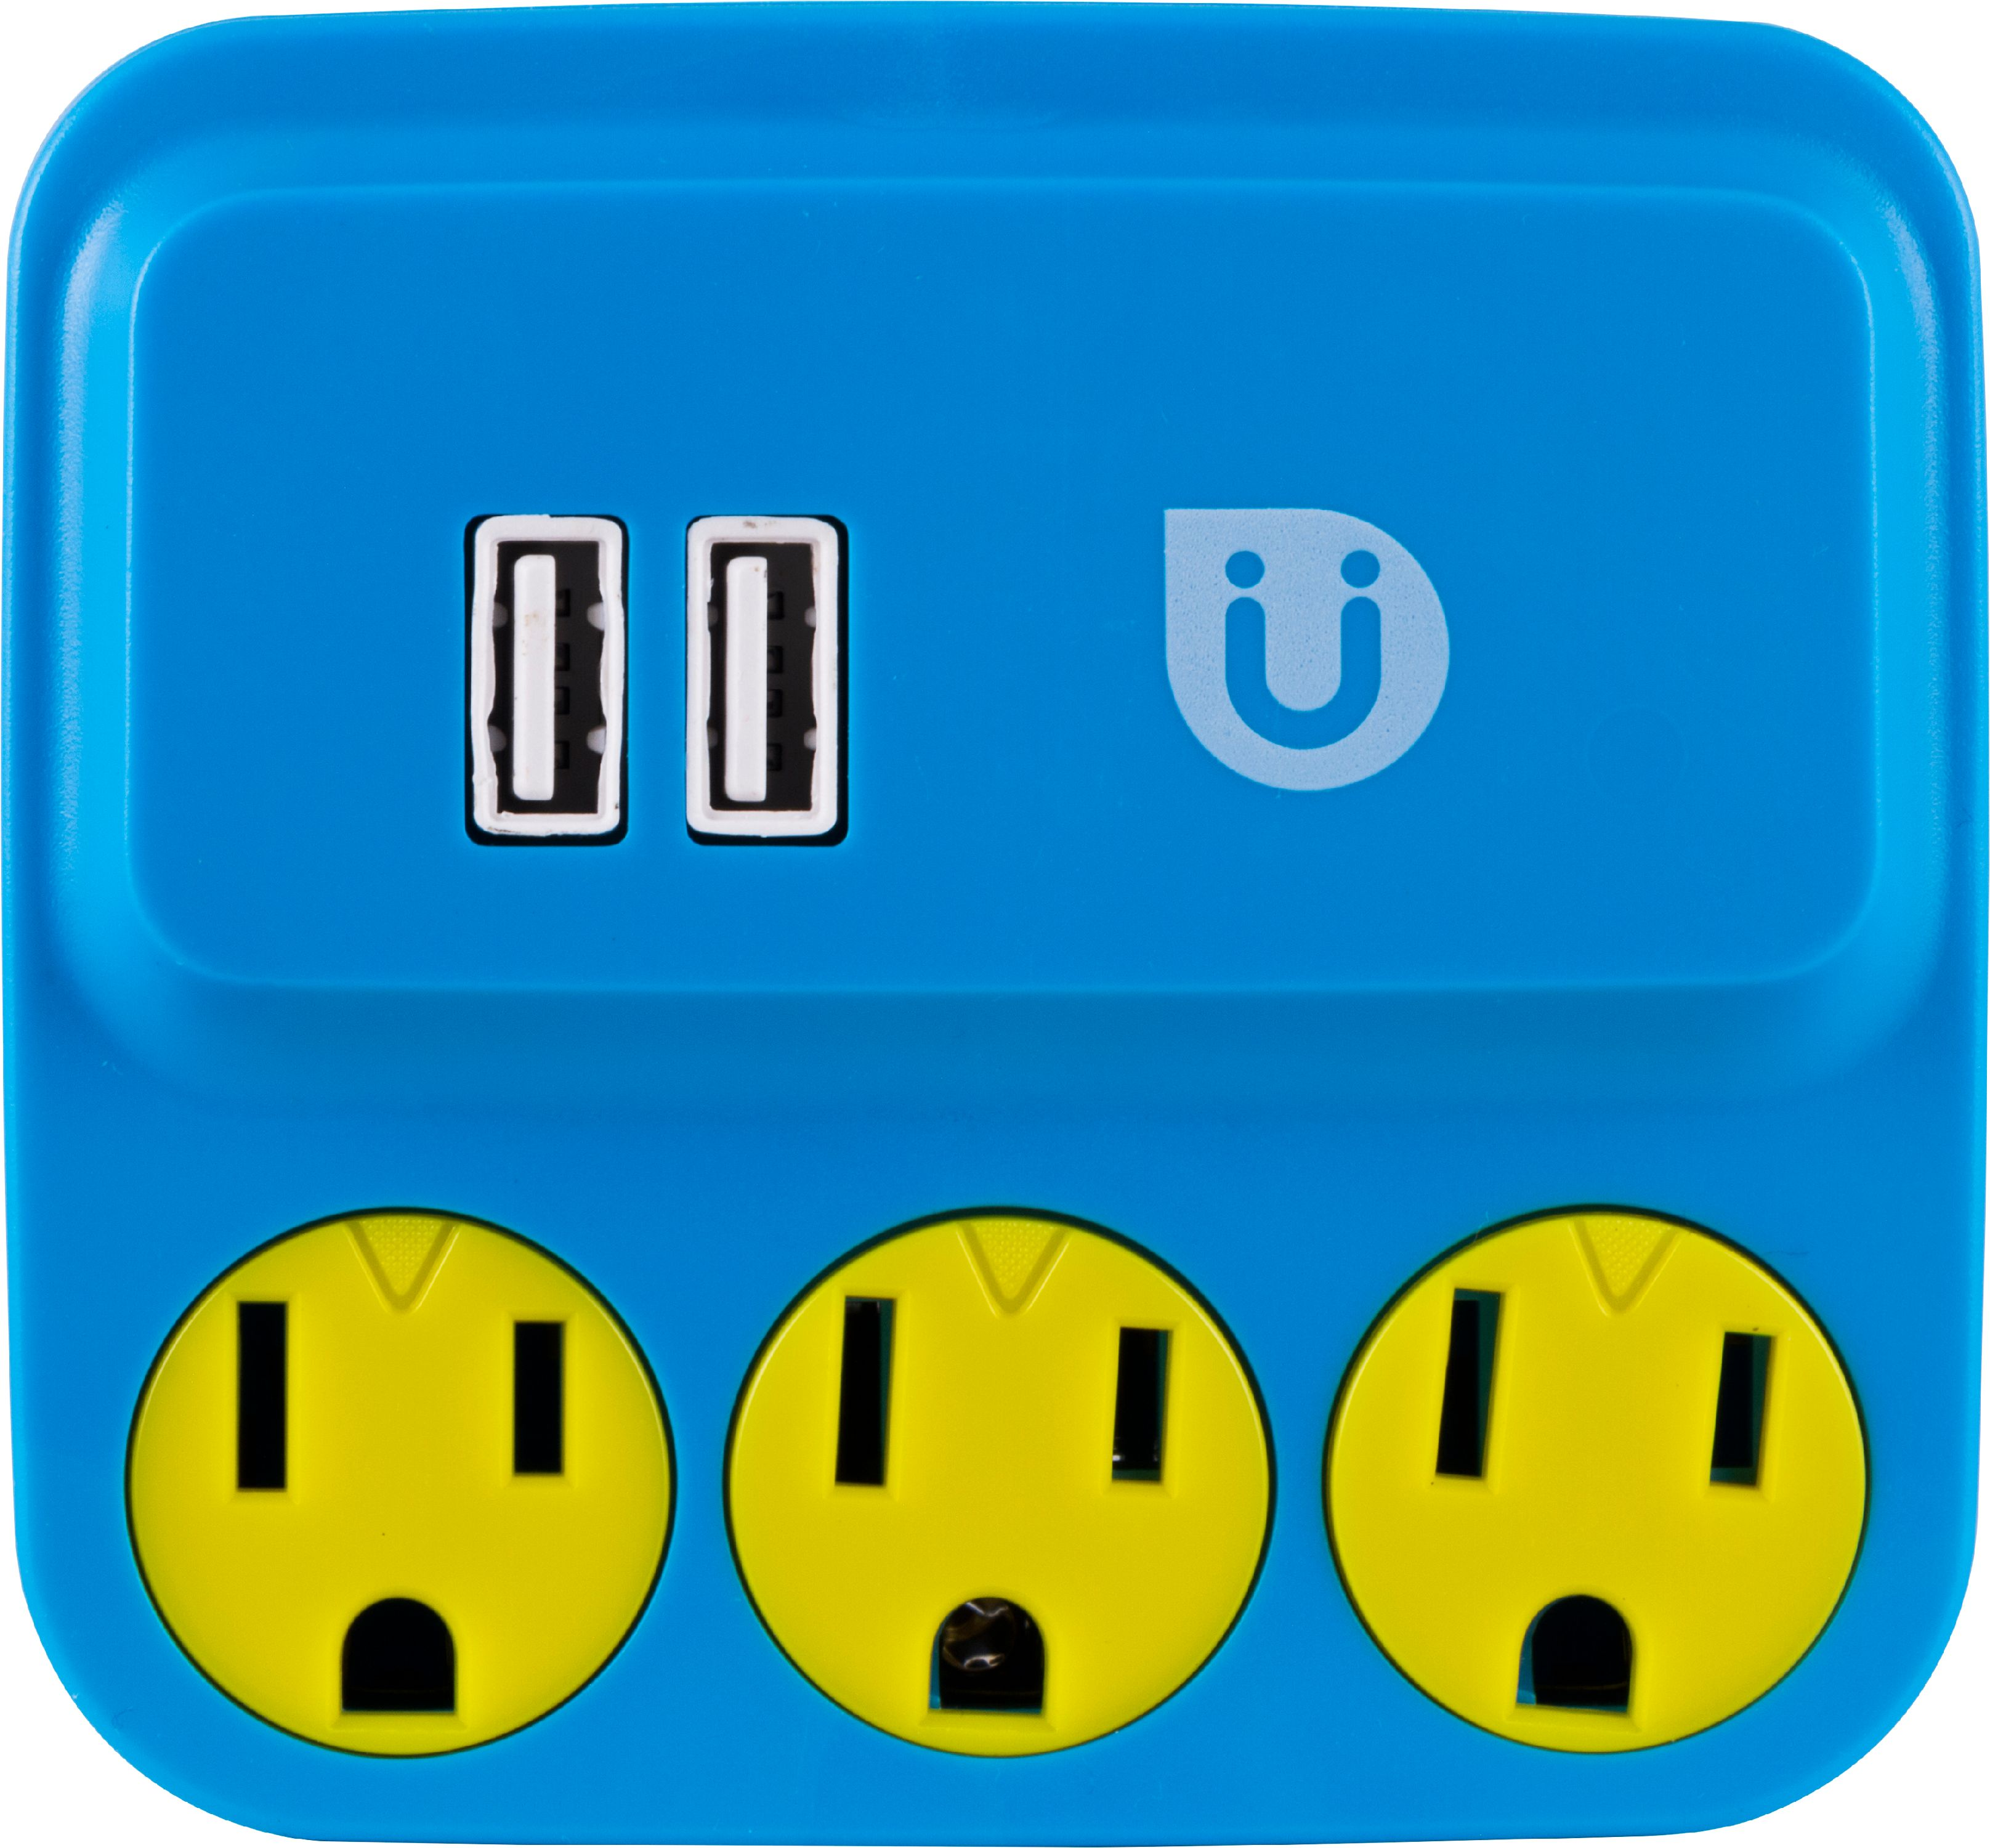 Uber Power Tap Charging Station, 3 Grounded Outlets, 2 USB Ports, Blue & Yellow, 25114